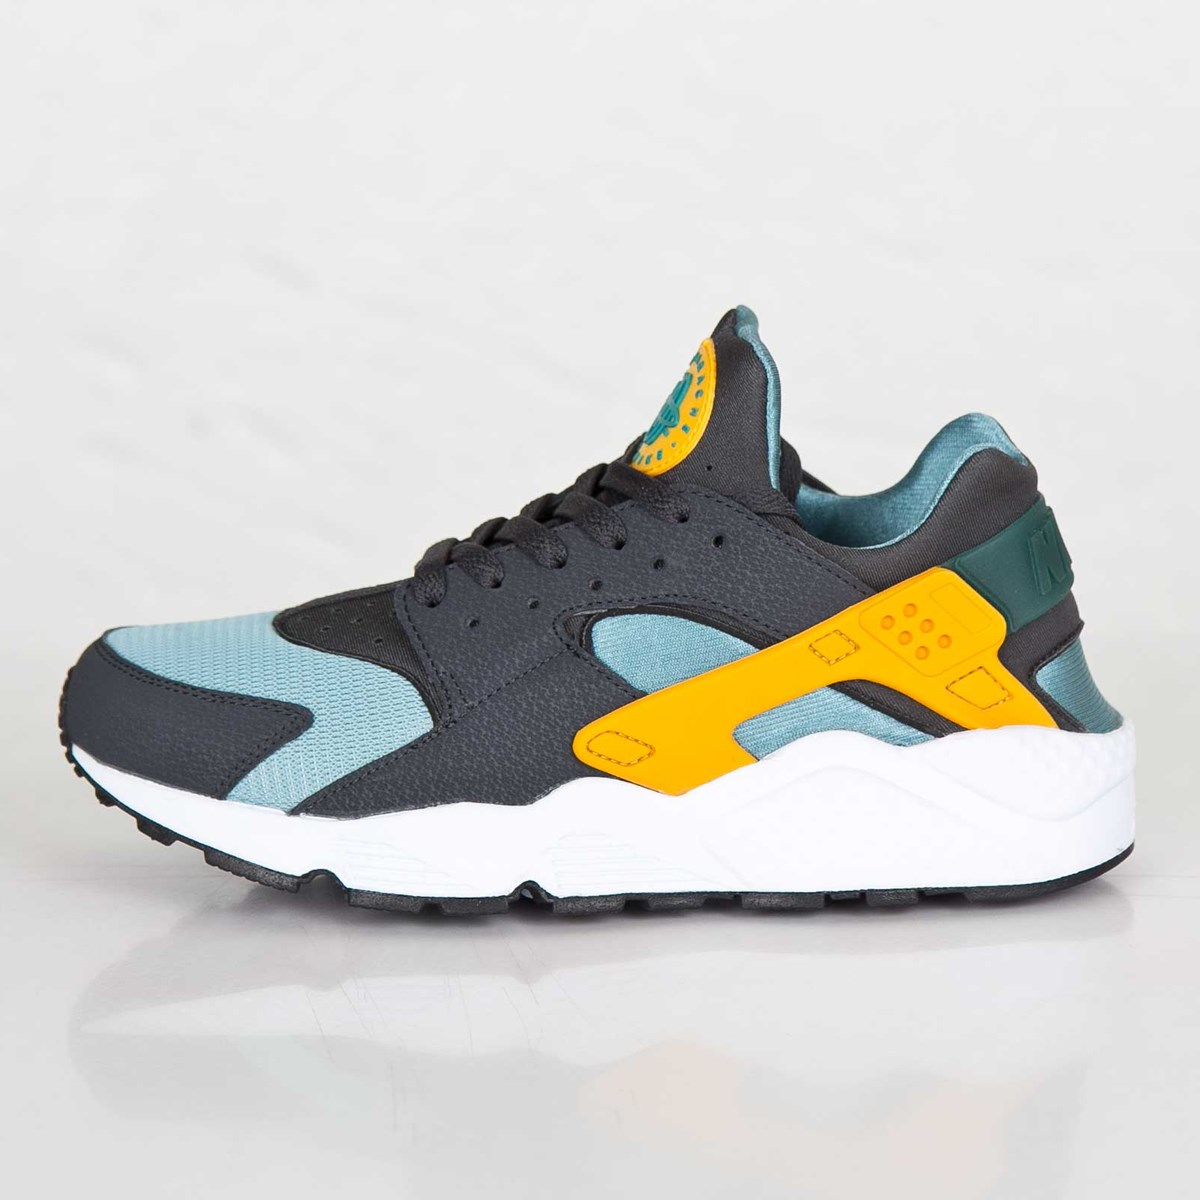 outlet store 0f0d7 48acf Nike Air Huarache - 318429-307 - Sneakersnstuff | sneakers & streetwear  online since 1999